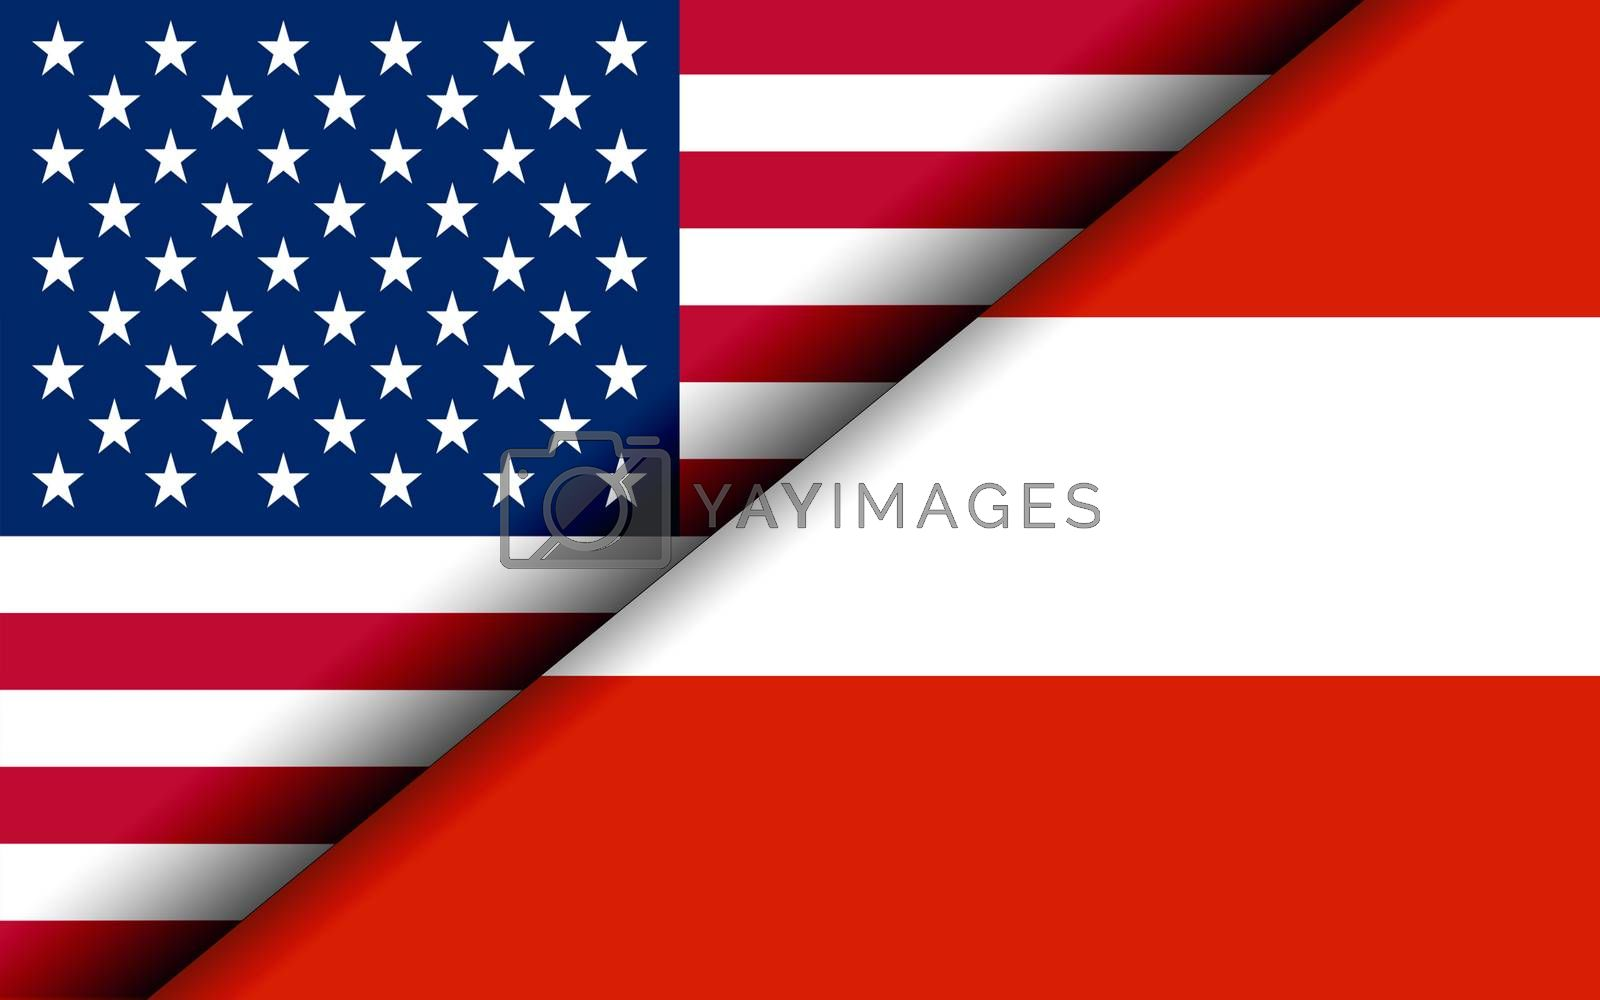 Flags of the USA and Austria divided diagonally. 3D rendering